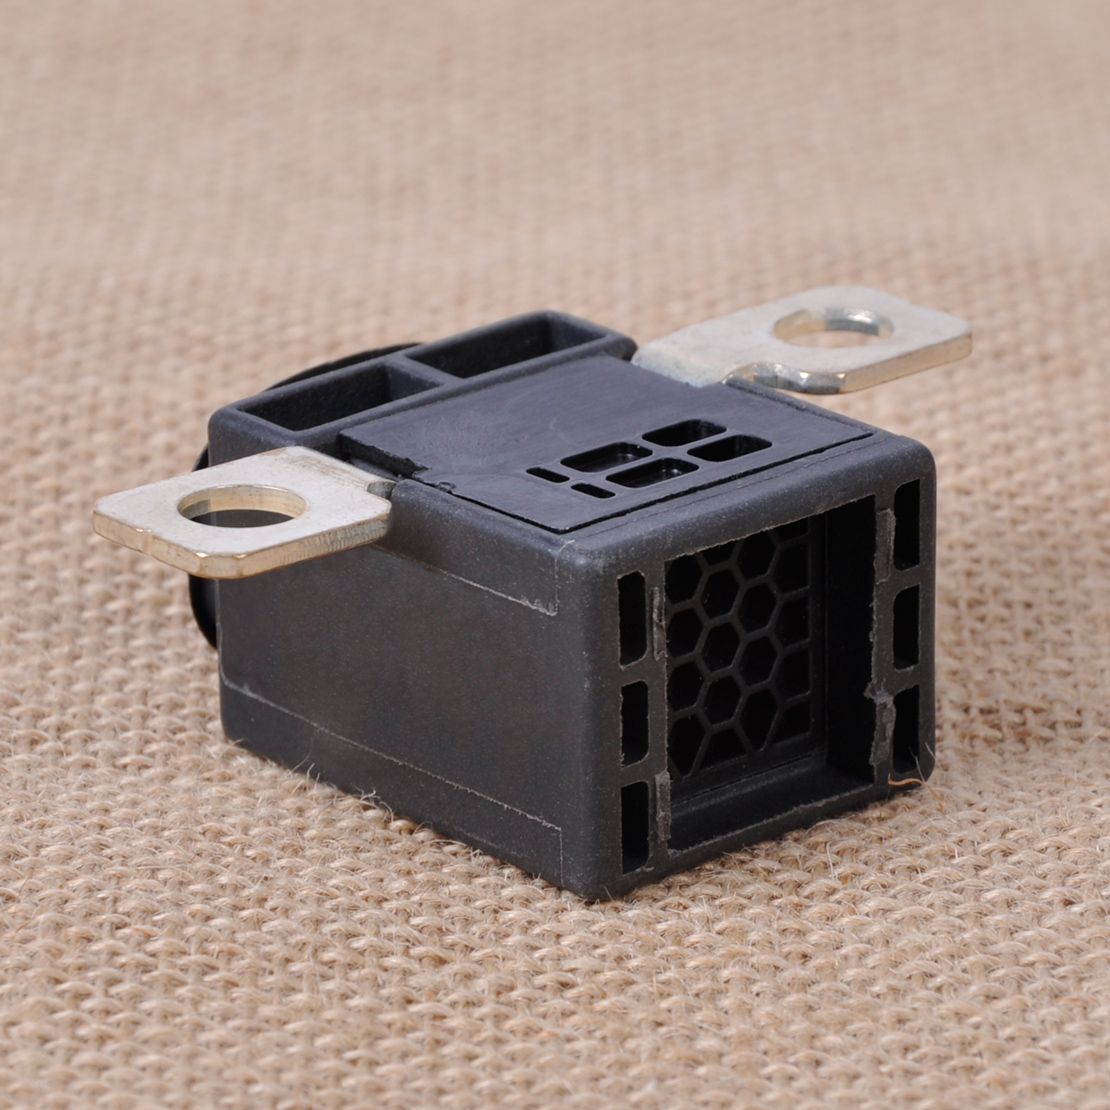 battery fuse overload protection for audi a3 a4 a5 a6 a8 q5 q7 tt vw 4f0915519 ebay. Black Bedroom Furniture Sets. Home Design Ideas